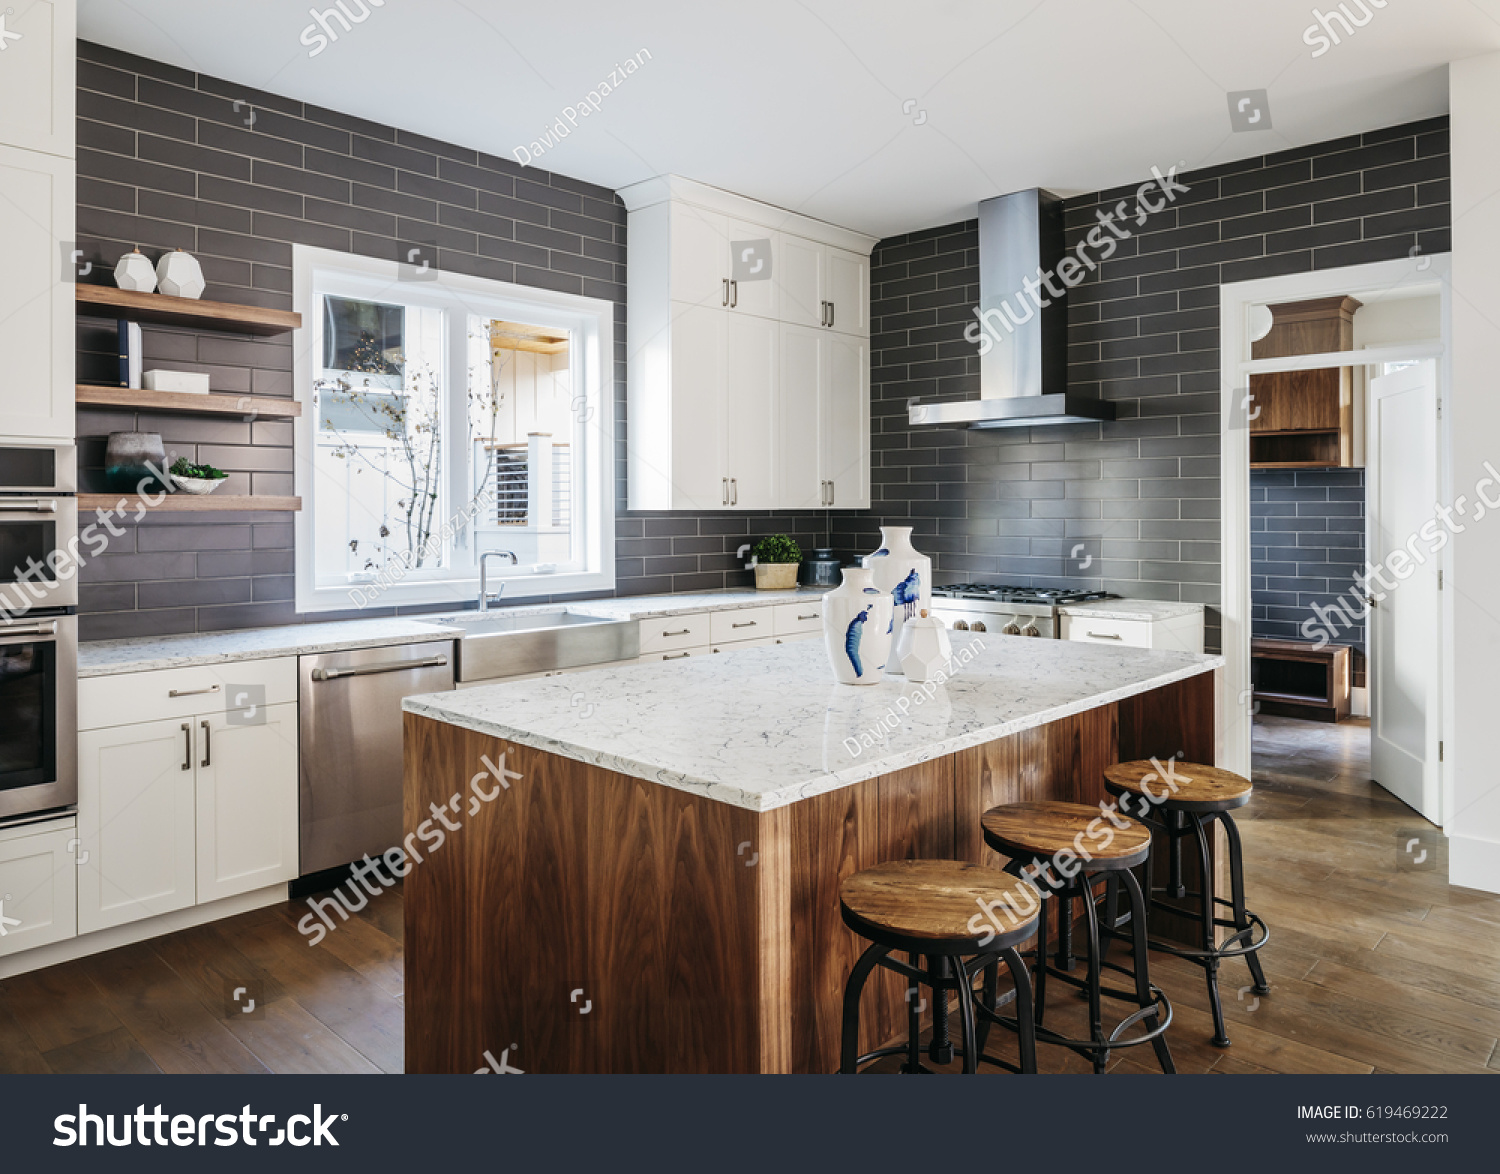 Modern Home Interior Stairway Kitchen Stock Photo (Royalty Free ...